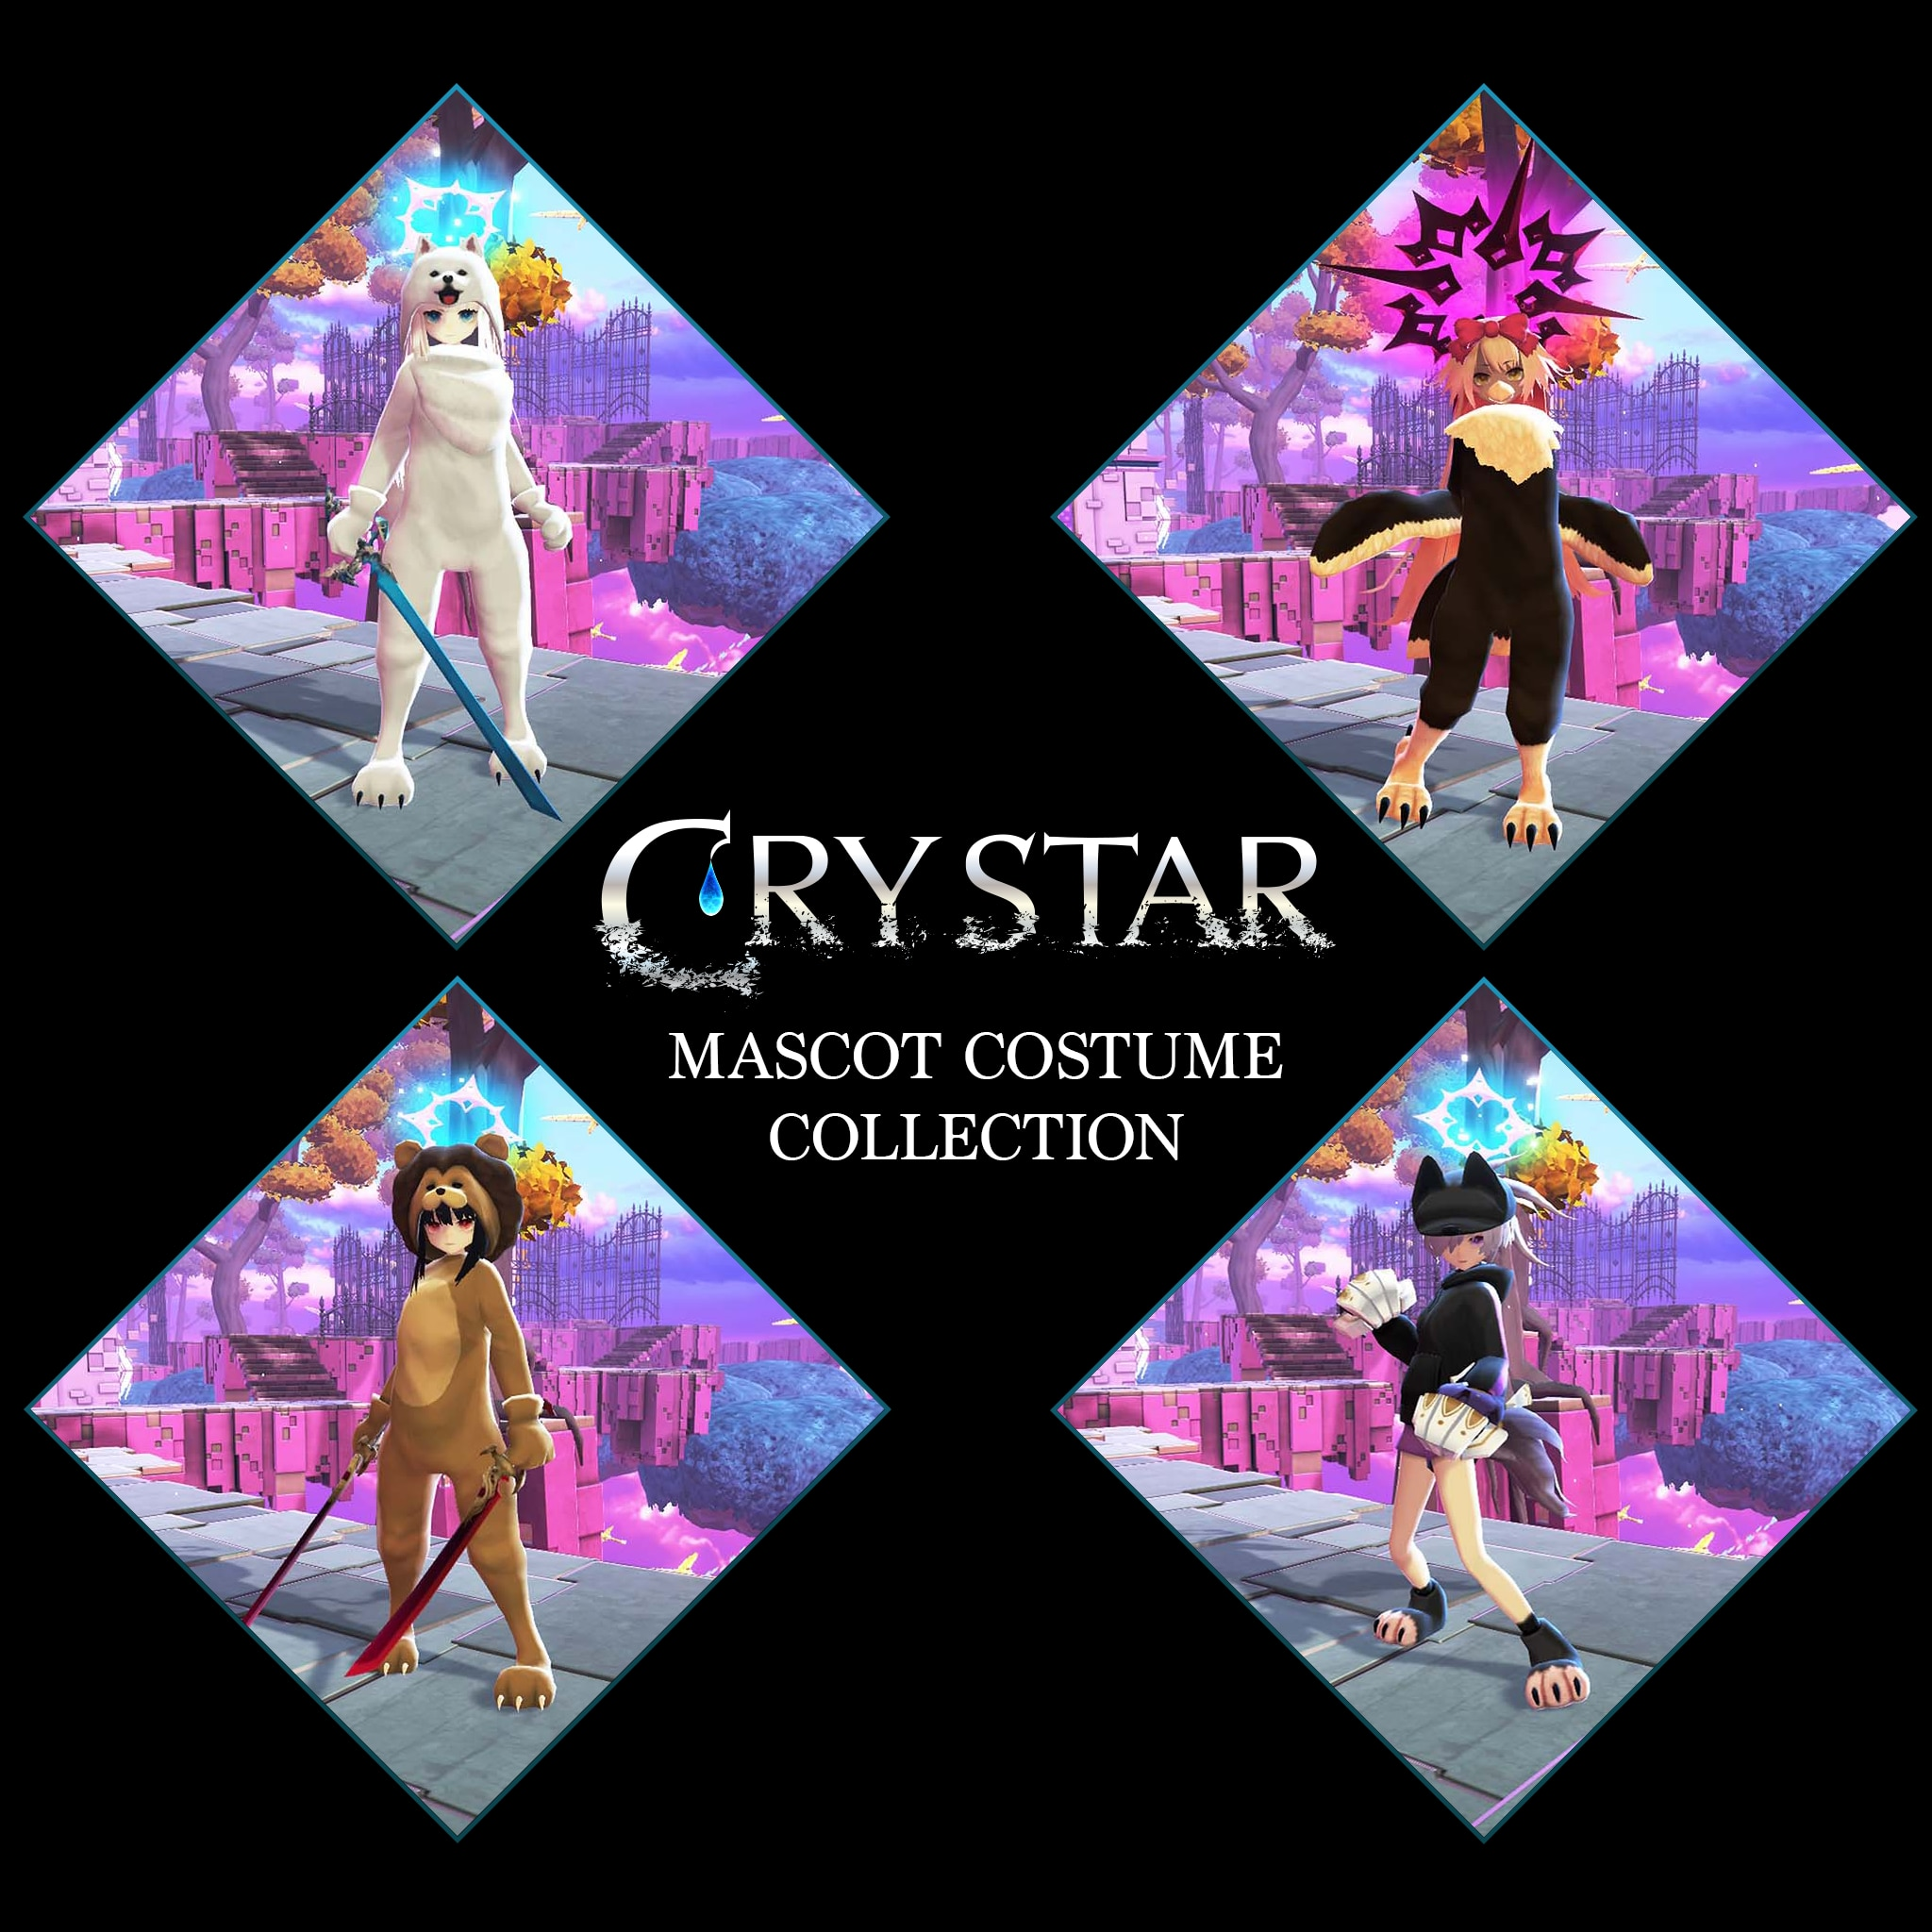 CRYSTAR Mascot Costume Collection